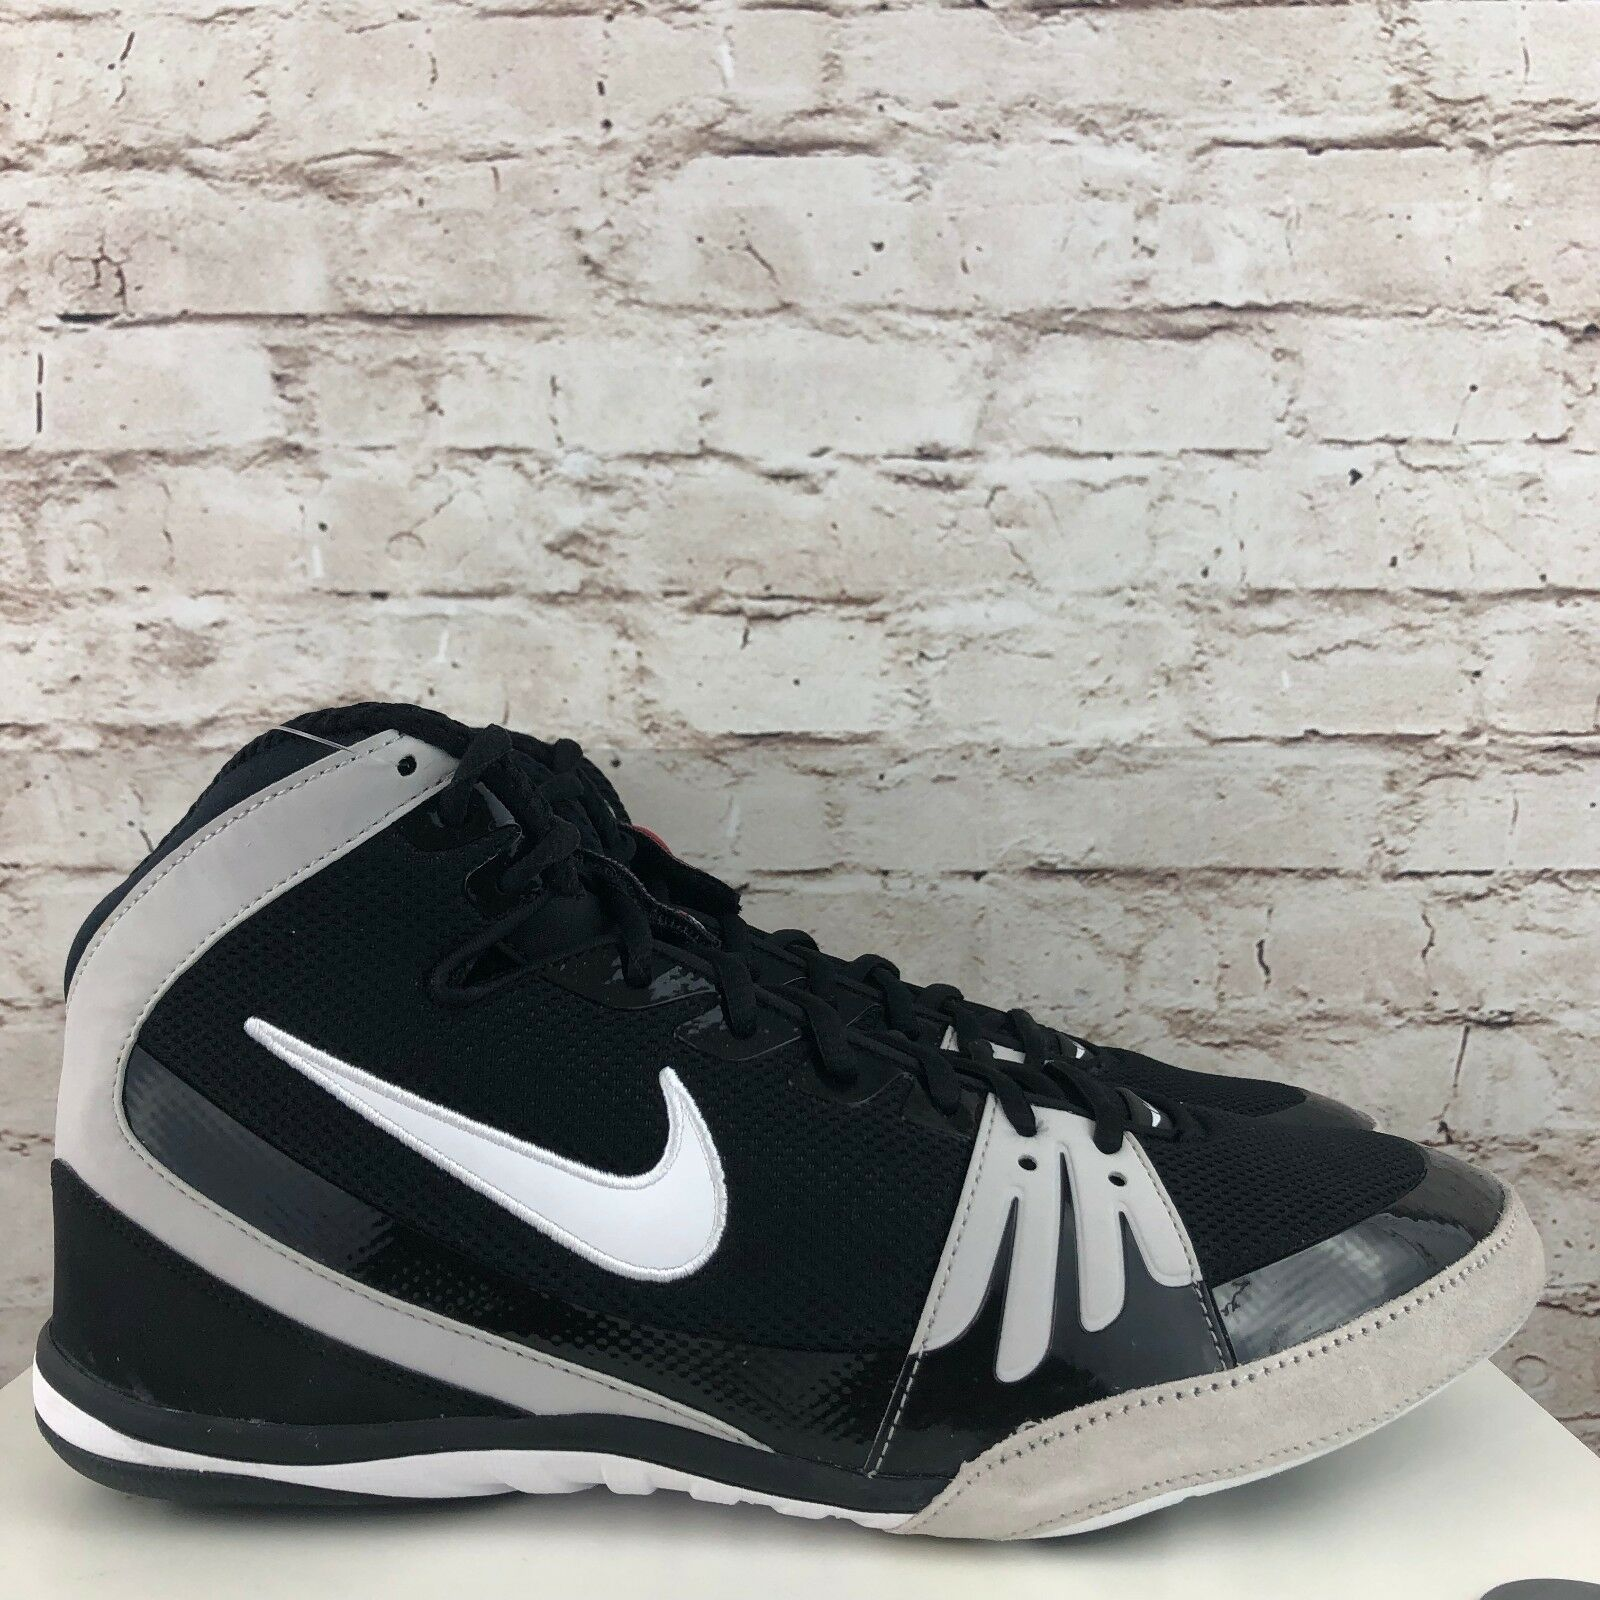 New Nike Freek Men's Wrestling shoes Black White 316403-011